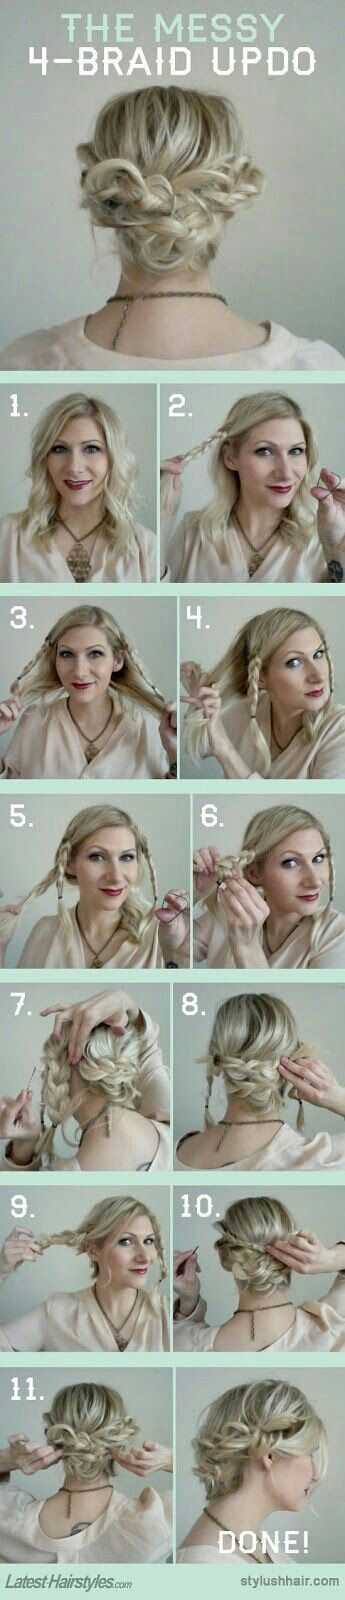 Messy braid updo picture tutorial